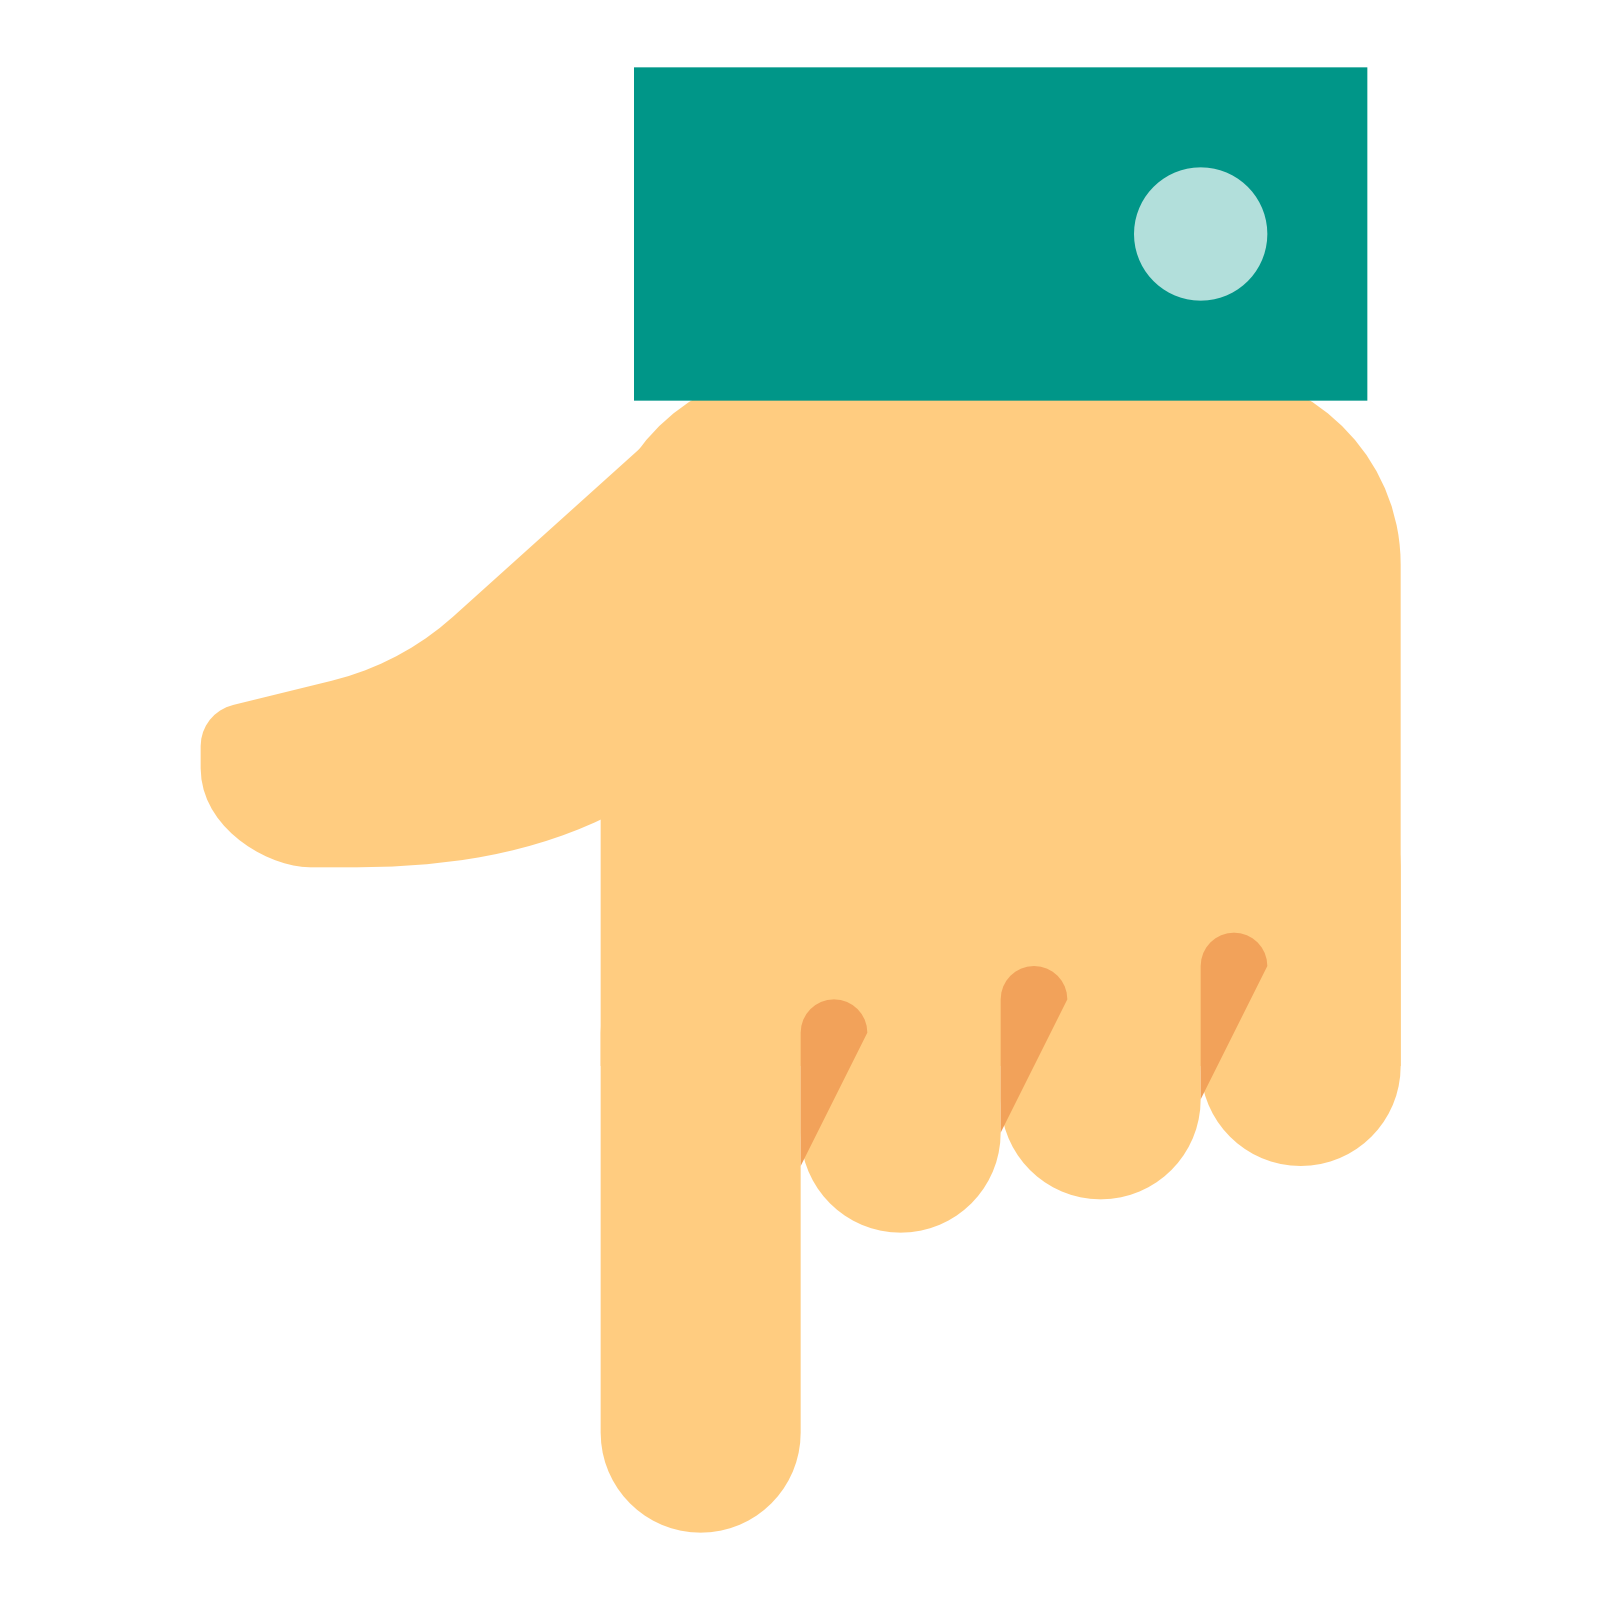 Flat hand png. Down transparent images pluspng